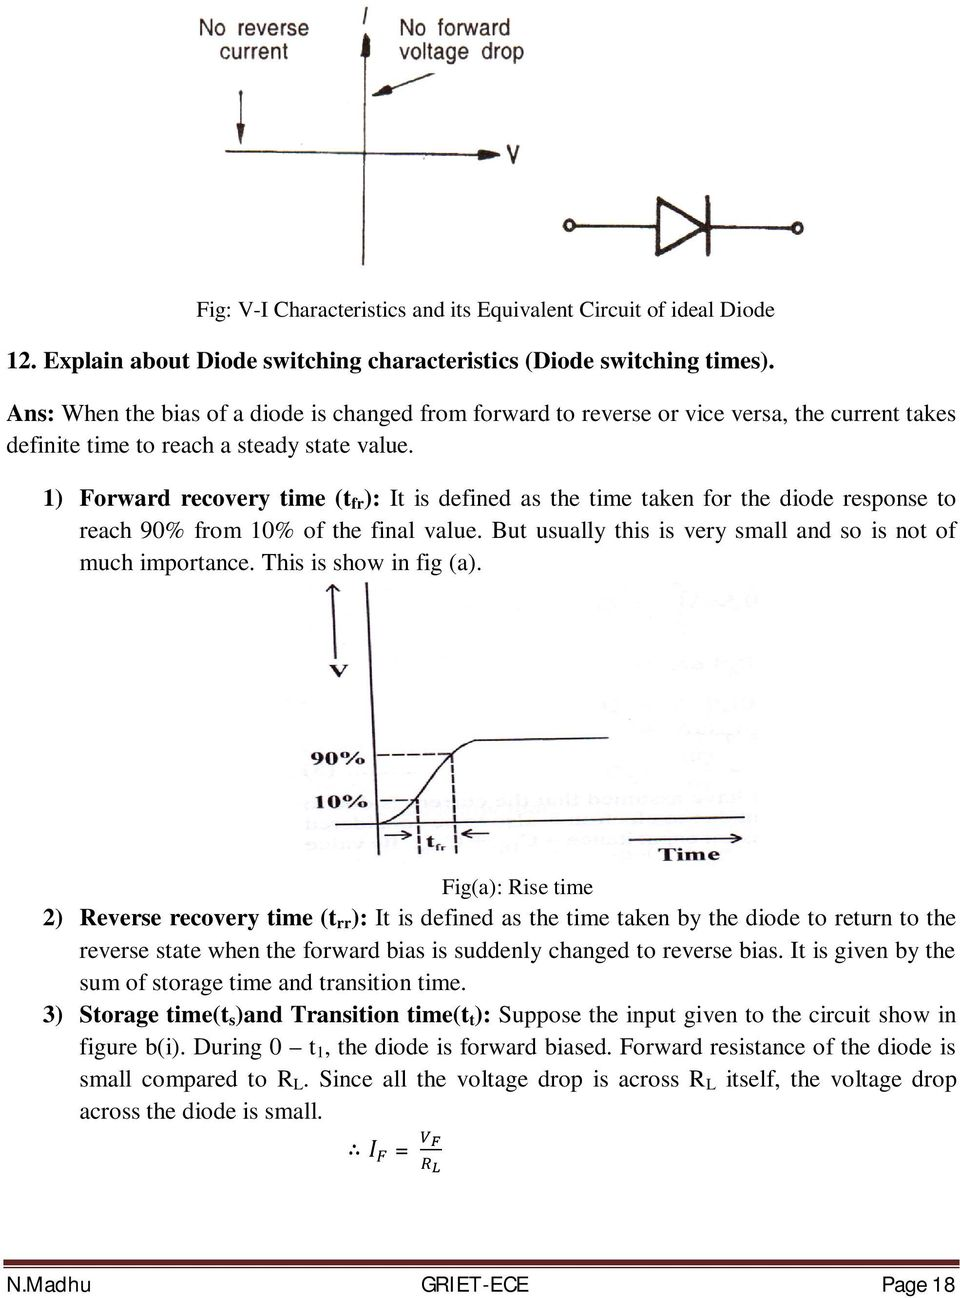 Basic Electrical And Electronics Engineering Pdf Filter Circuits Inductor Lc Clc Or Pi 1 Forward Recovery Time T Fr It Is Defined As The